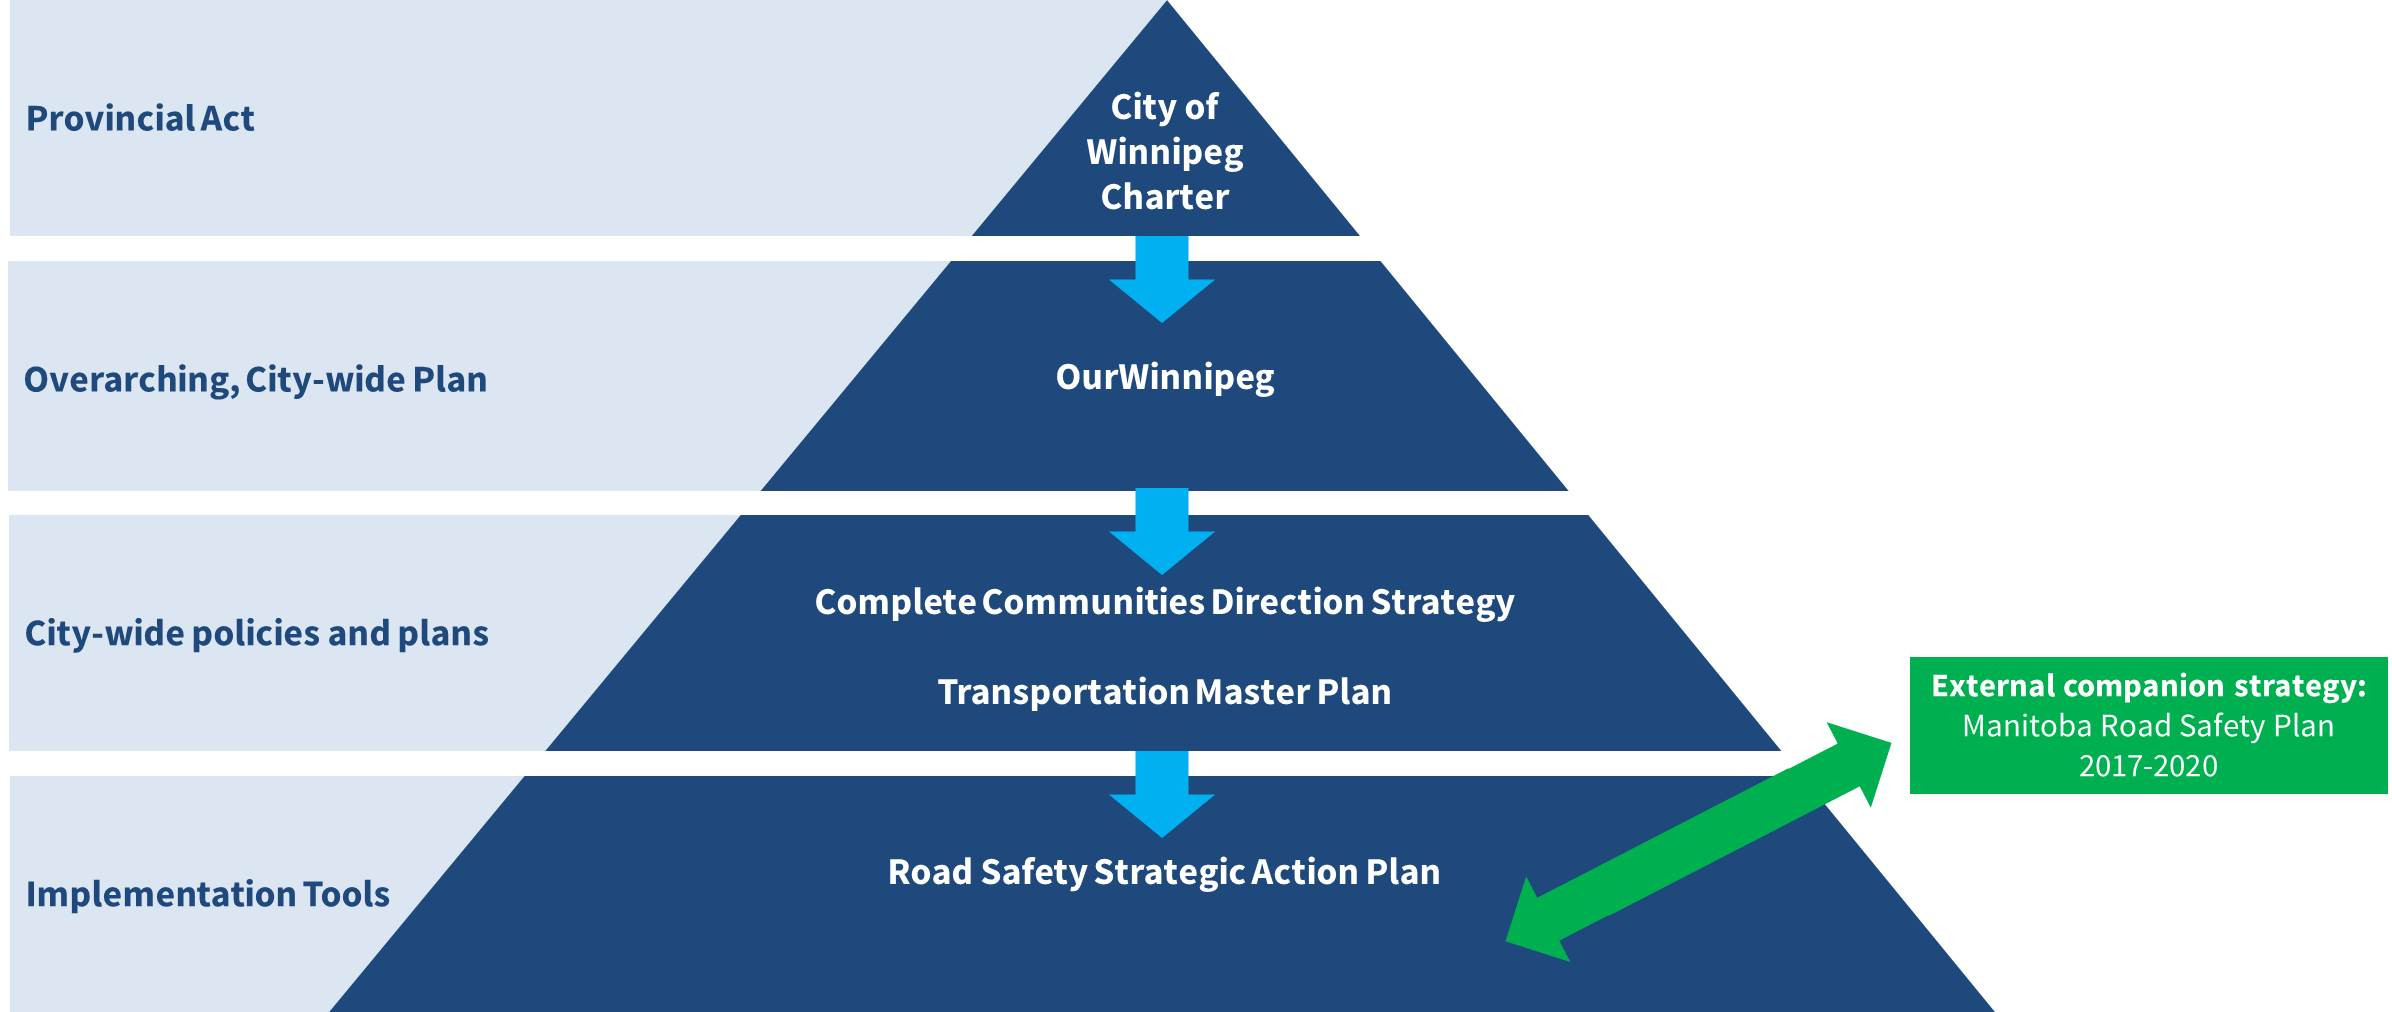 The Provincial Act that governs the City of Winnipeg is the City of Winnipeg Charter. The next level of planning document is OurWinnipeg, which is the overarching city-wide plan that guides the City's actions. From there, Complete Communities and the Transportation Master Plan are city-wide policies and plans. The Road Safety Strategic Action Plan is the implementation tool in this project. The external companion strategy from the Province is the Manitoba Road Safety Plan (2017-2020).